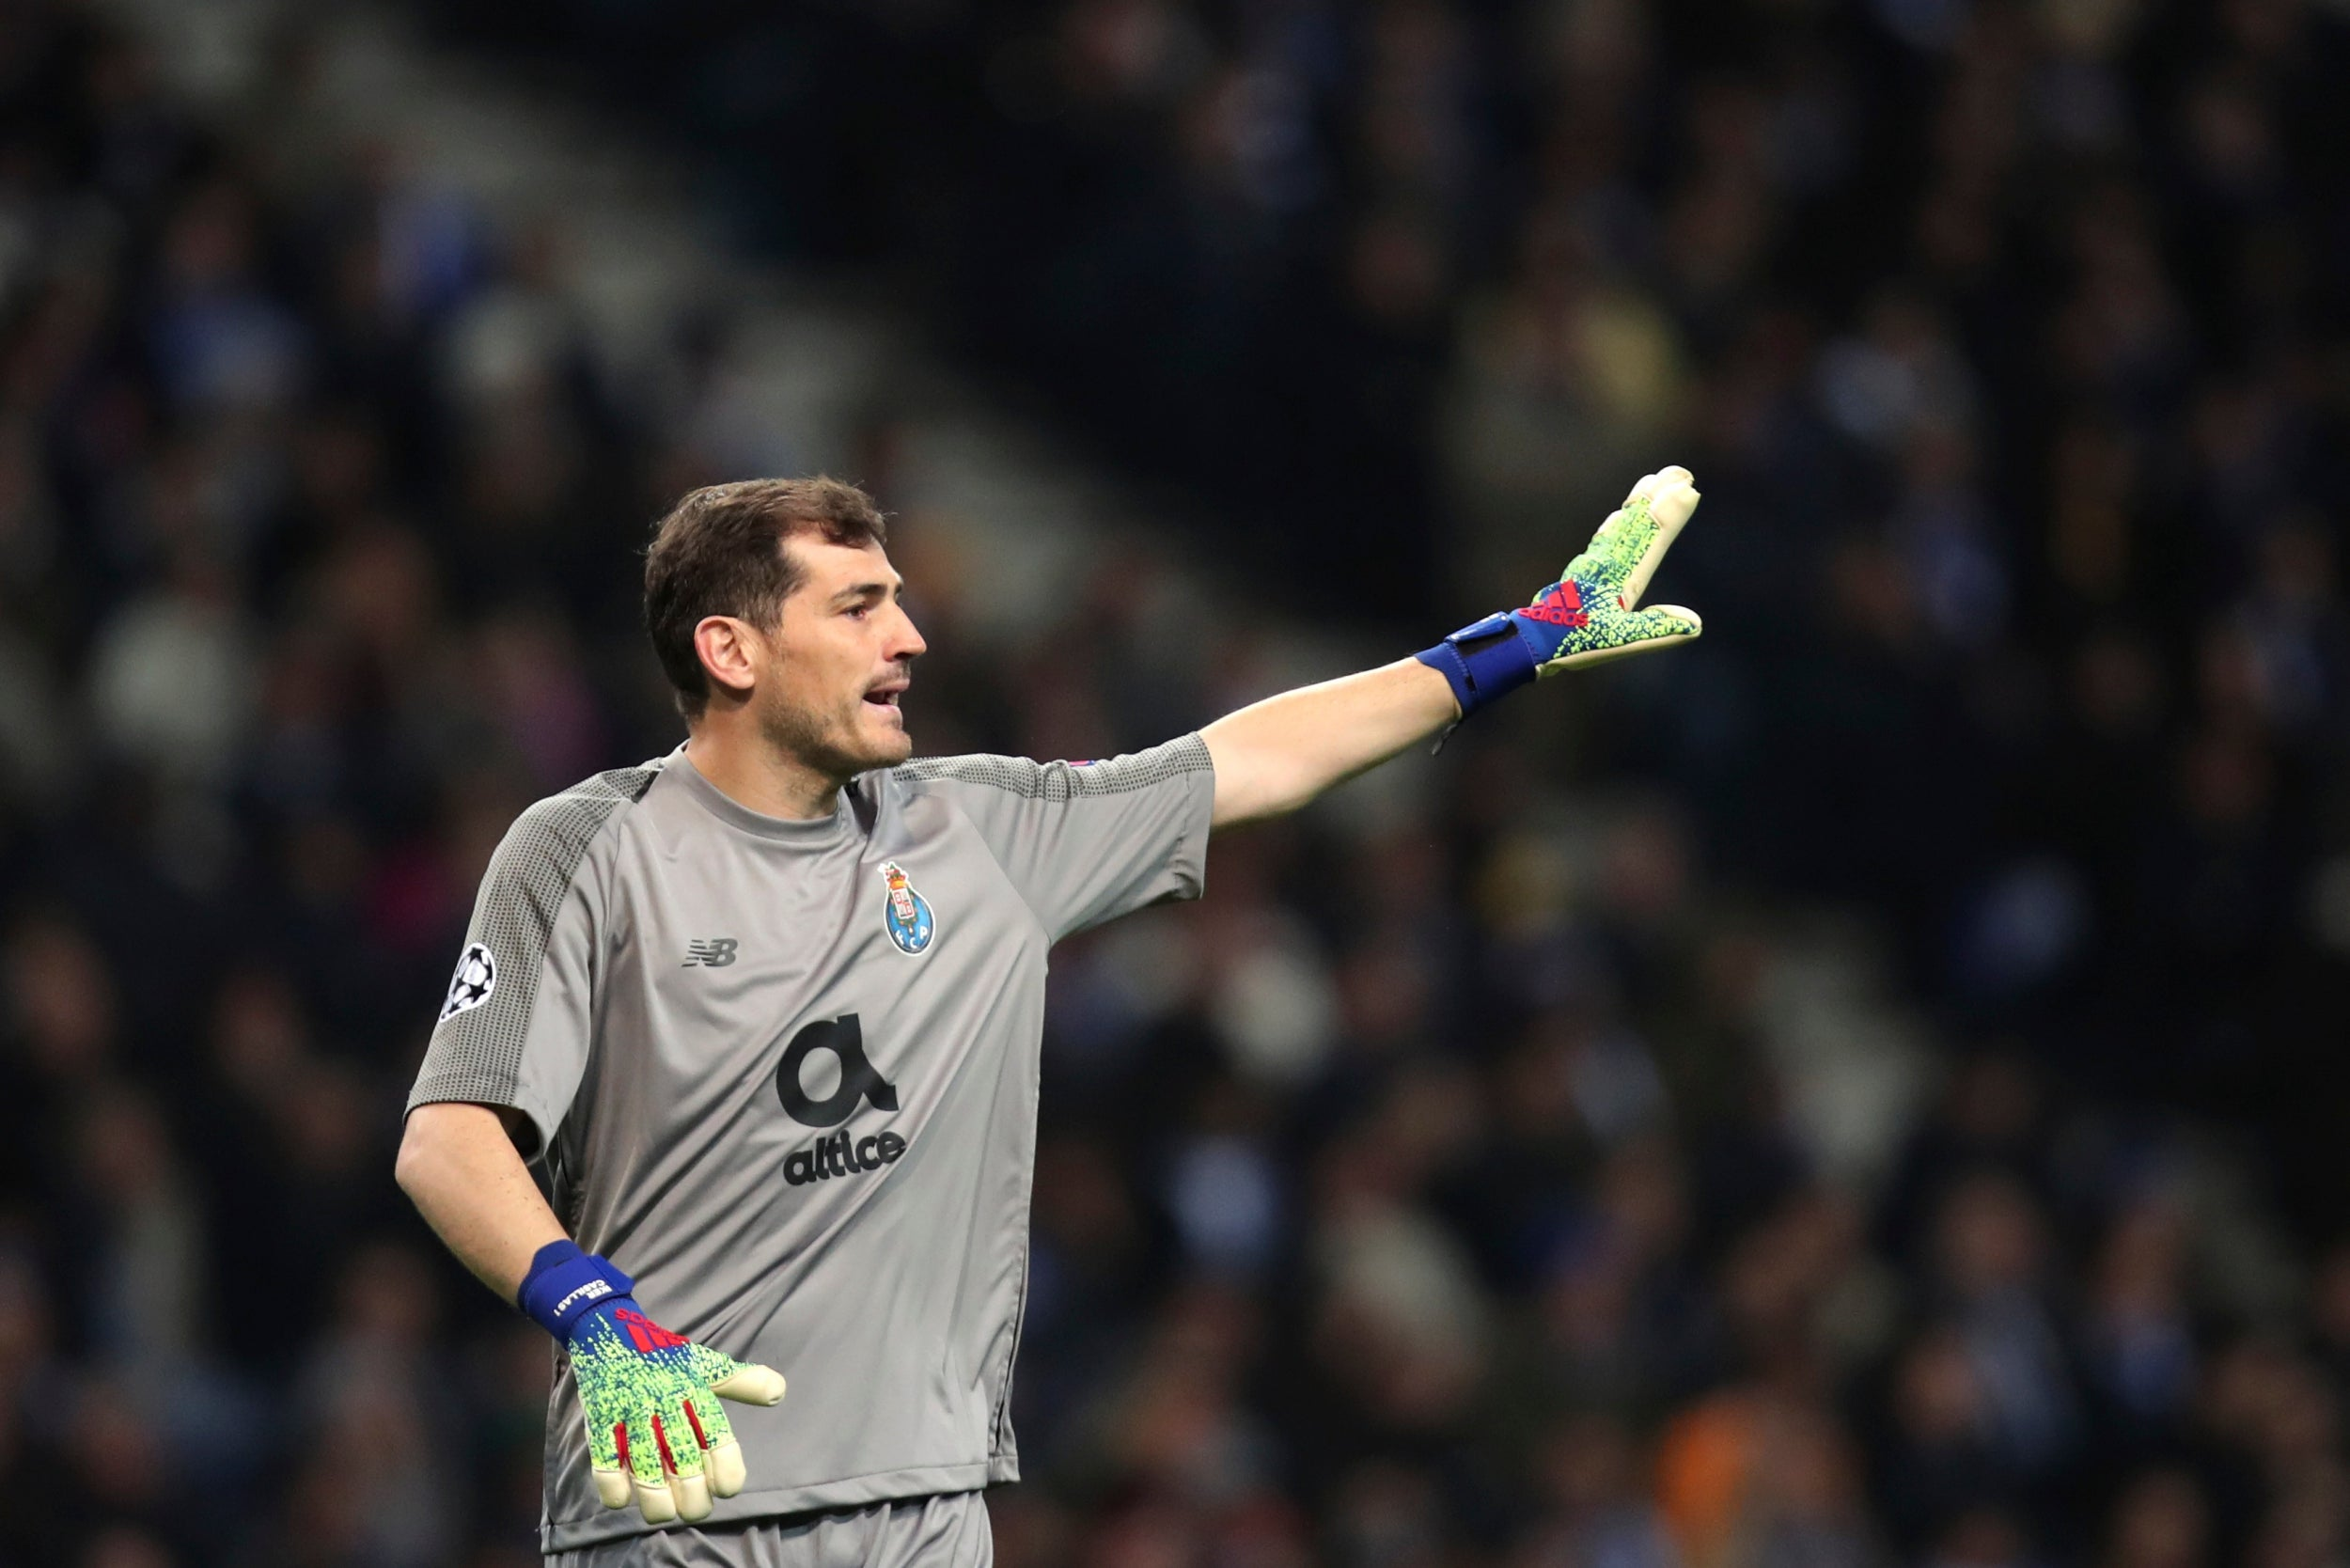 1b52d8c21c6 Iker Casillas - latest news, breaking stories and comment - The ...